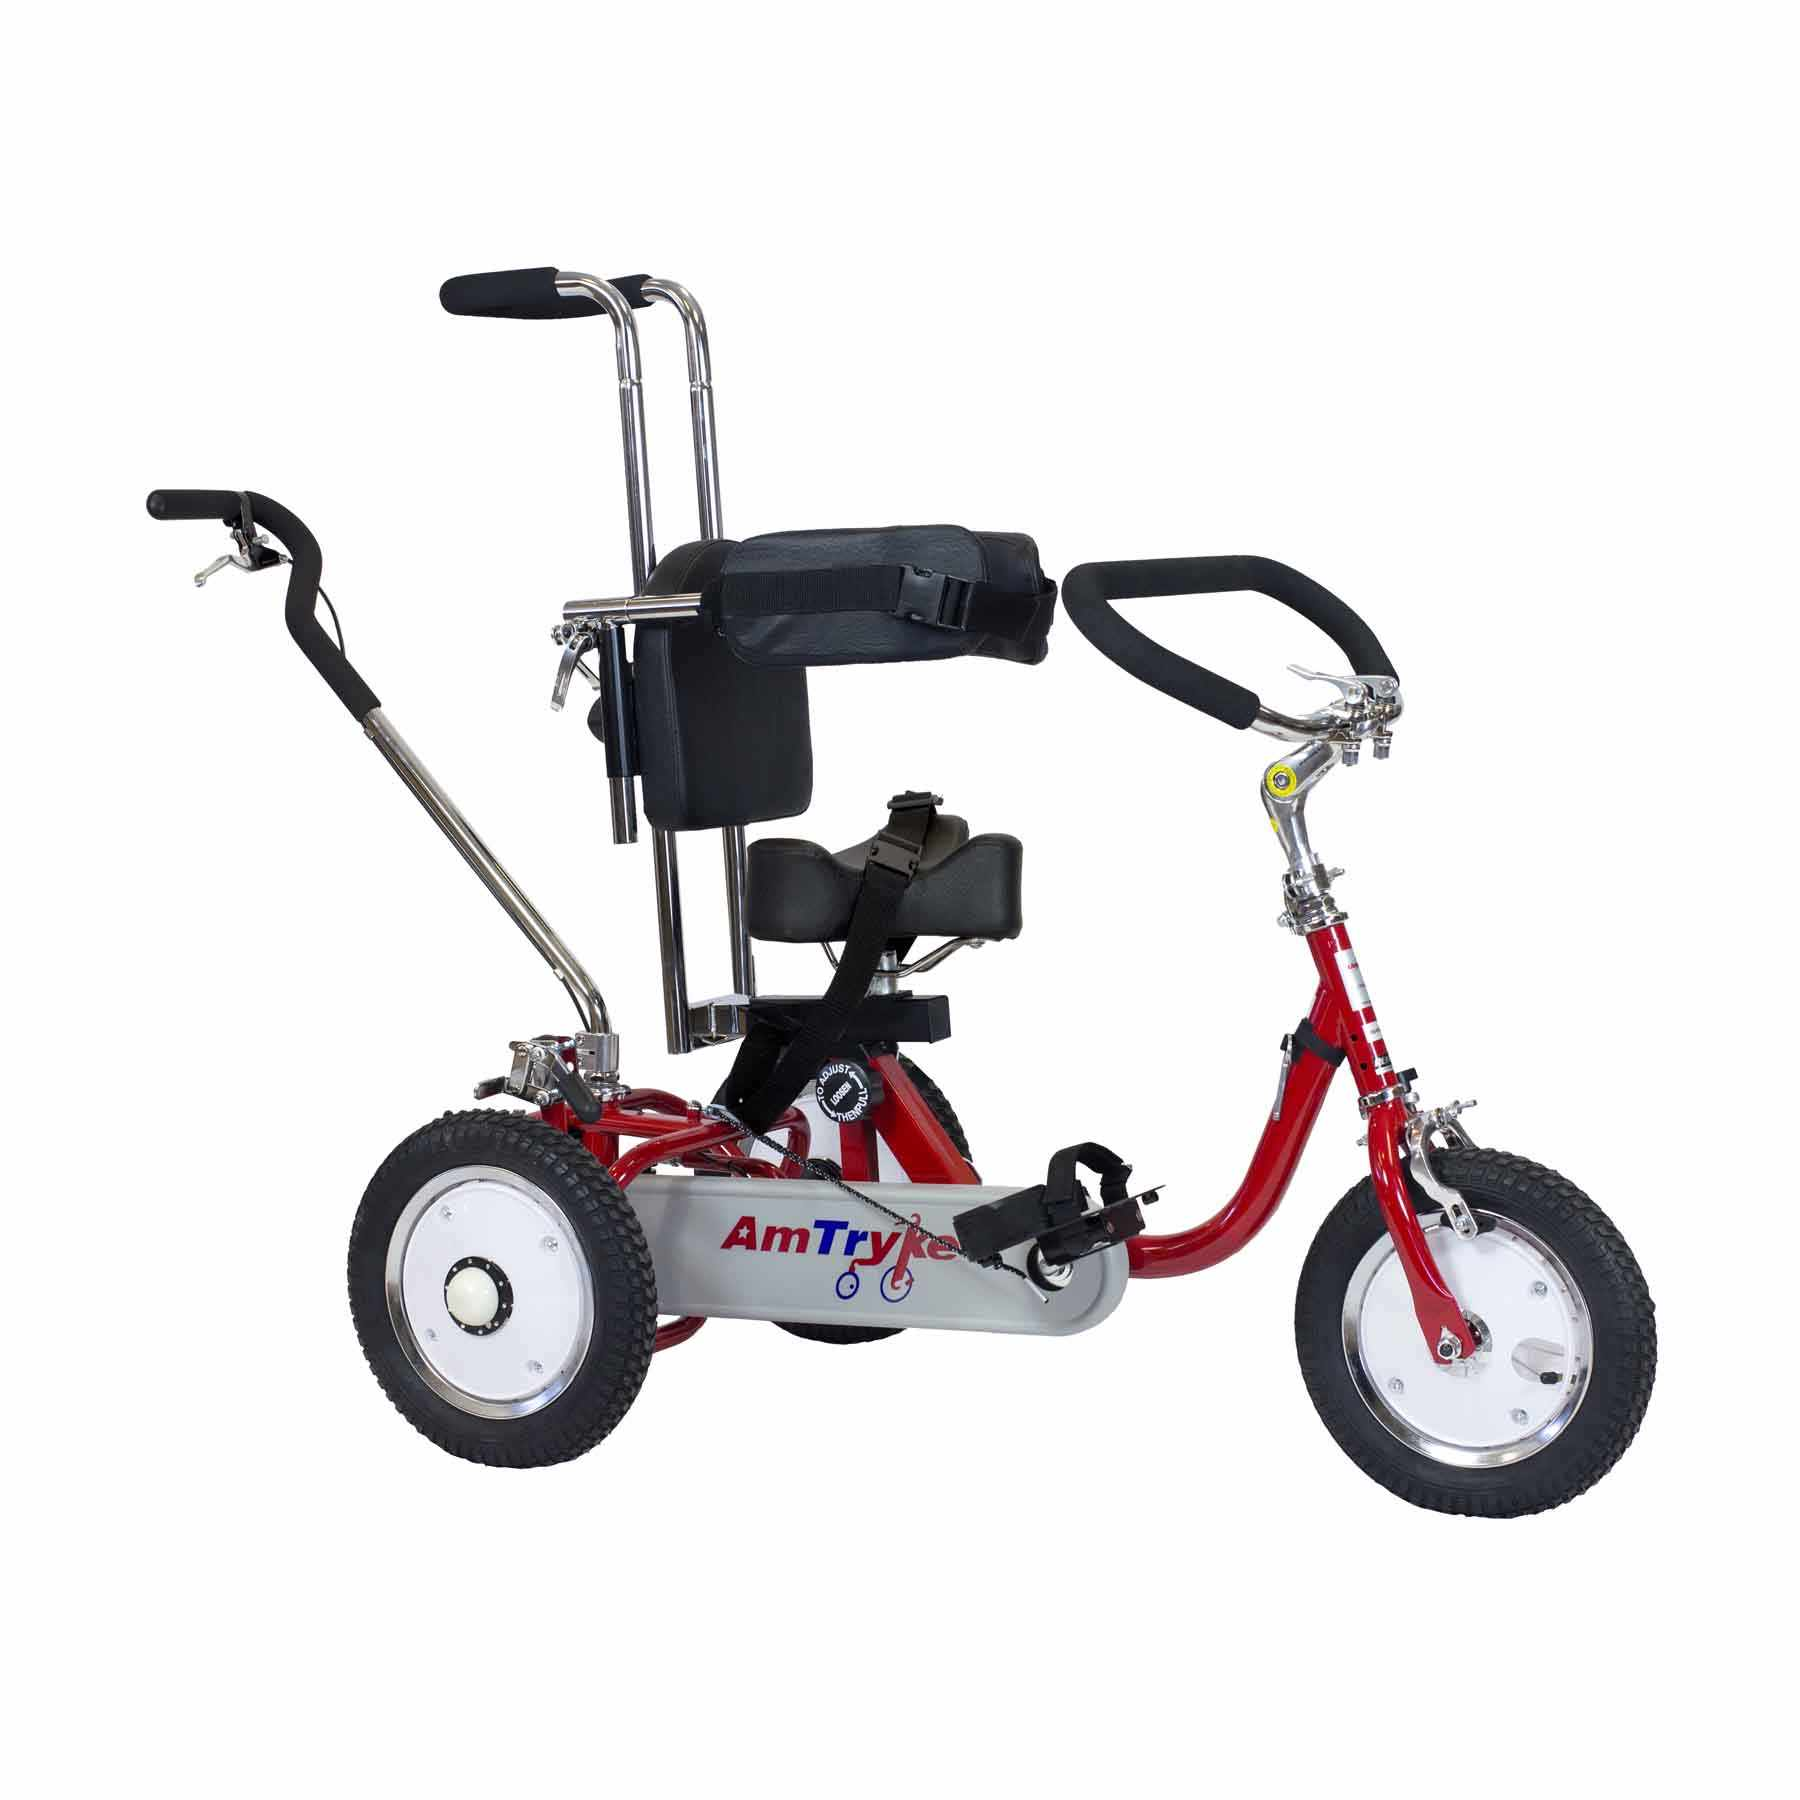 Amtryke Proseries 1412 Tricycle | Amtryke Tricycles - Medicaleshop